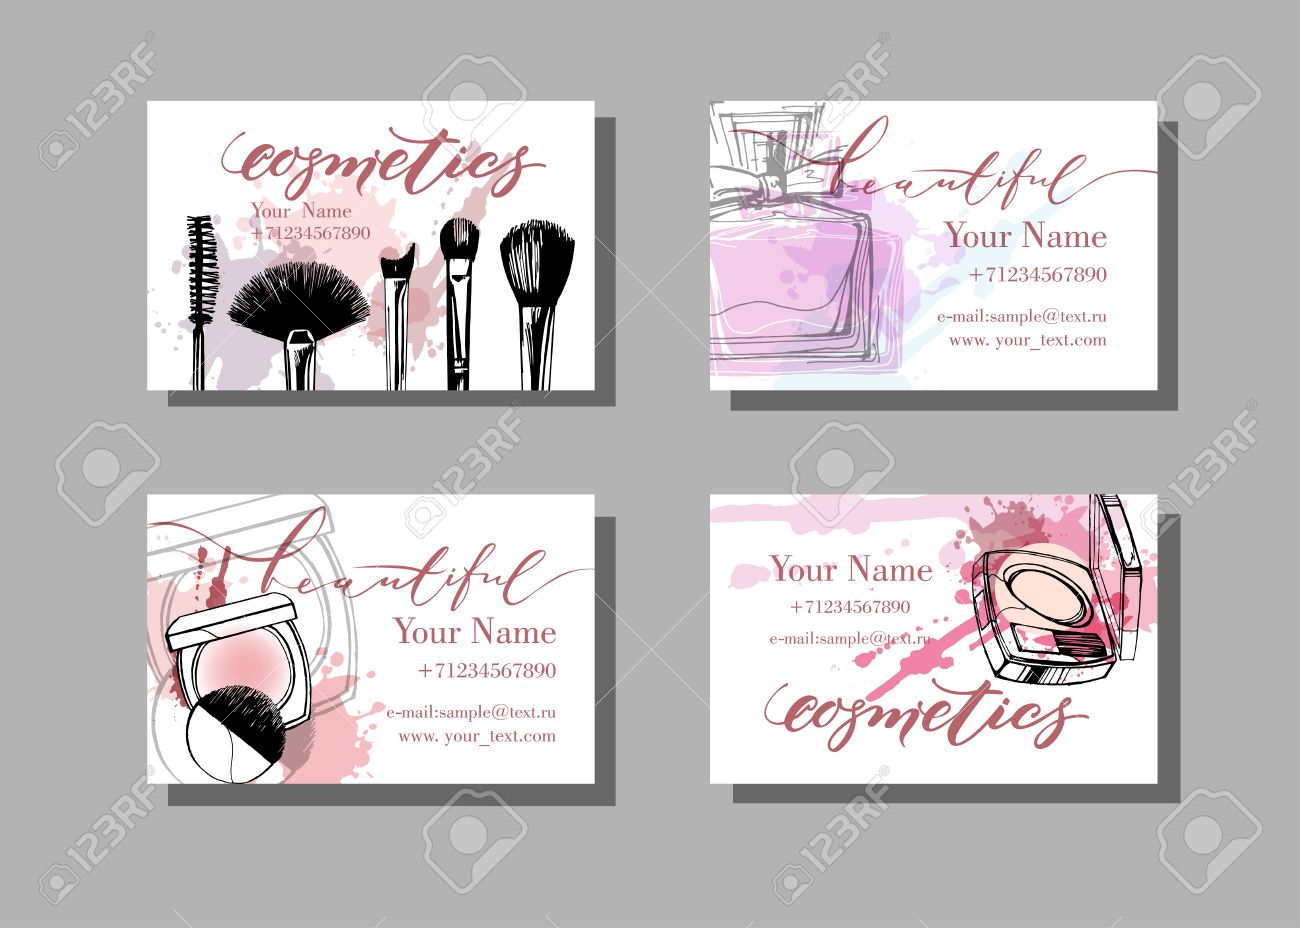 Makeup artist business card vector template with makeup items makeup artist business card vector template with makeup items pattern fashion and beauty background cheaphphosting